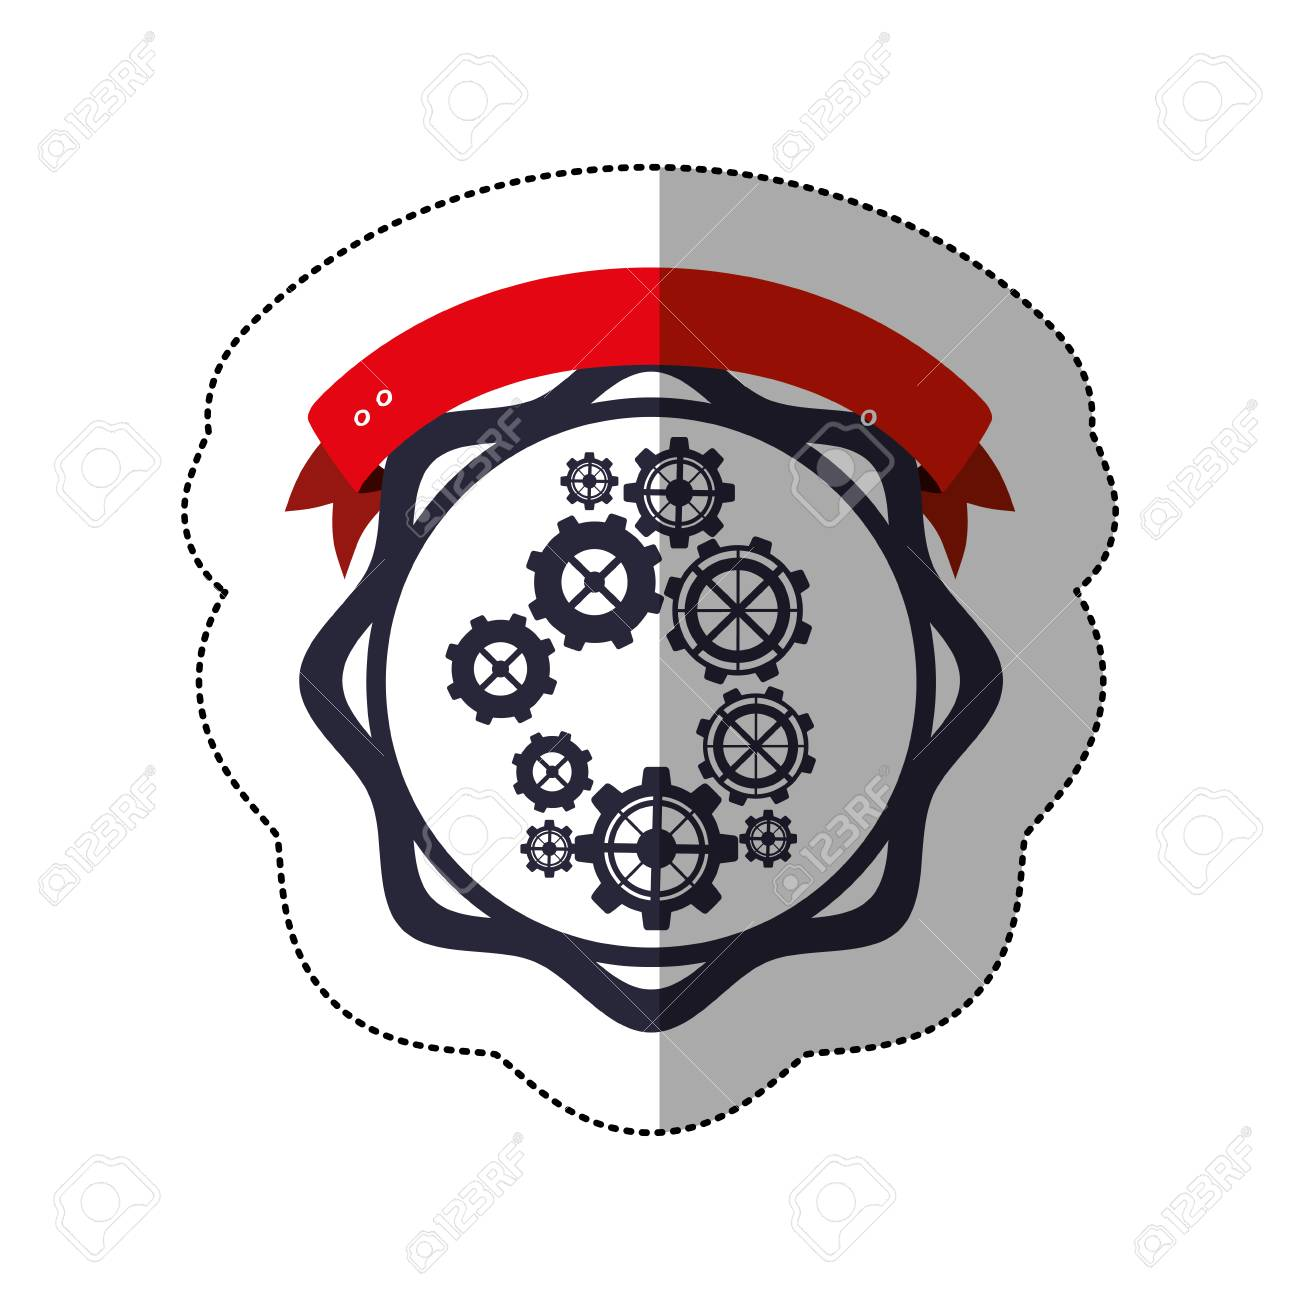 middle shadow sticker with gear wheel between circular shapes